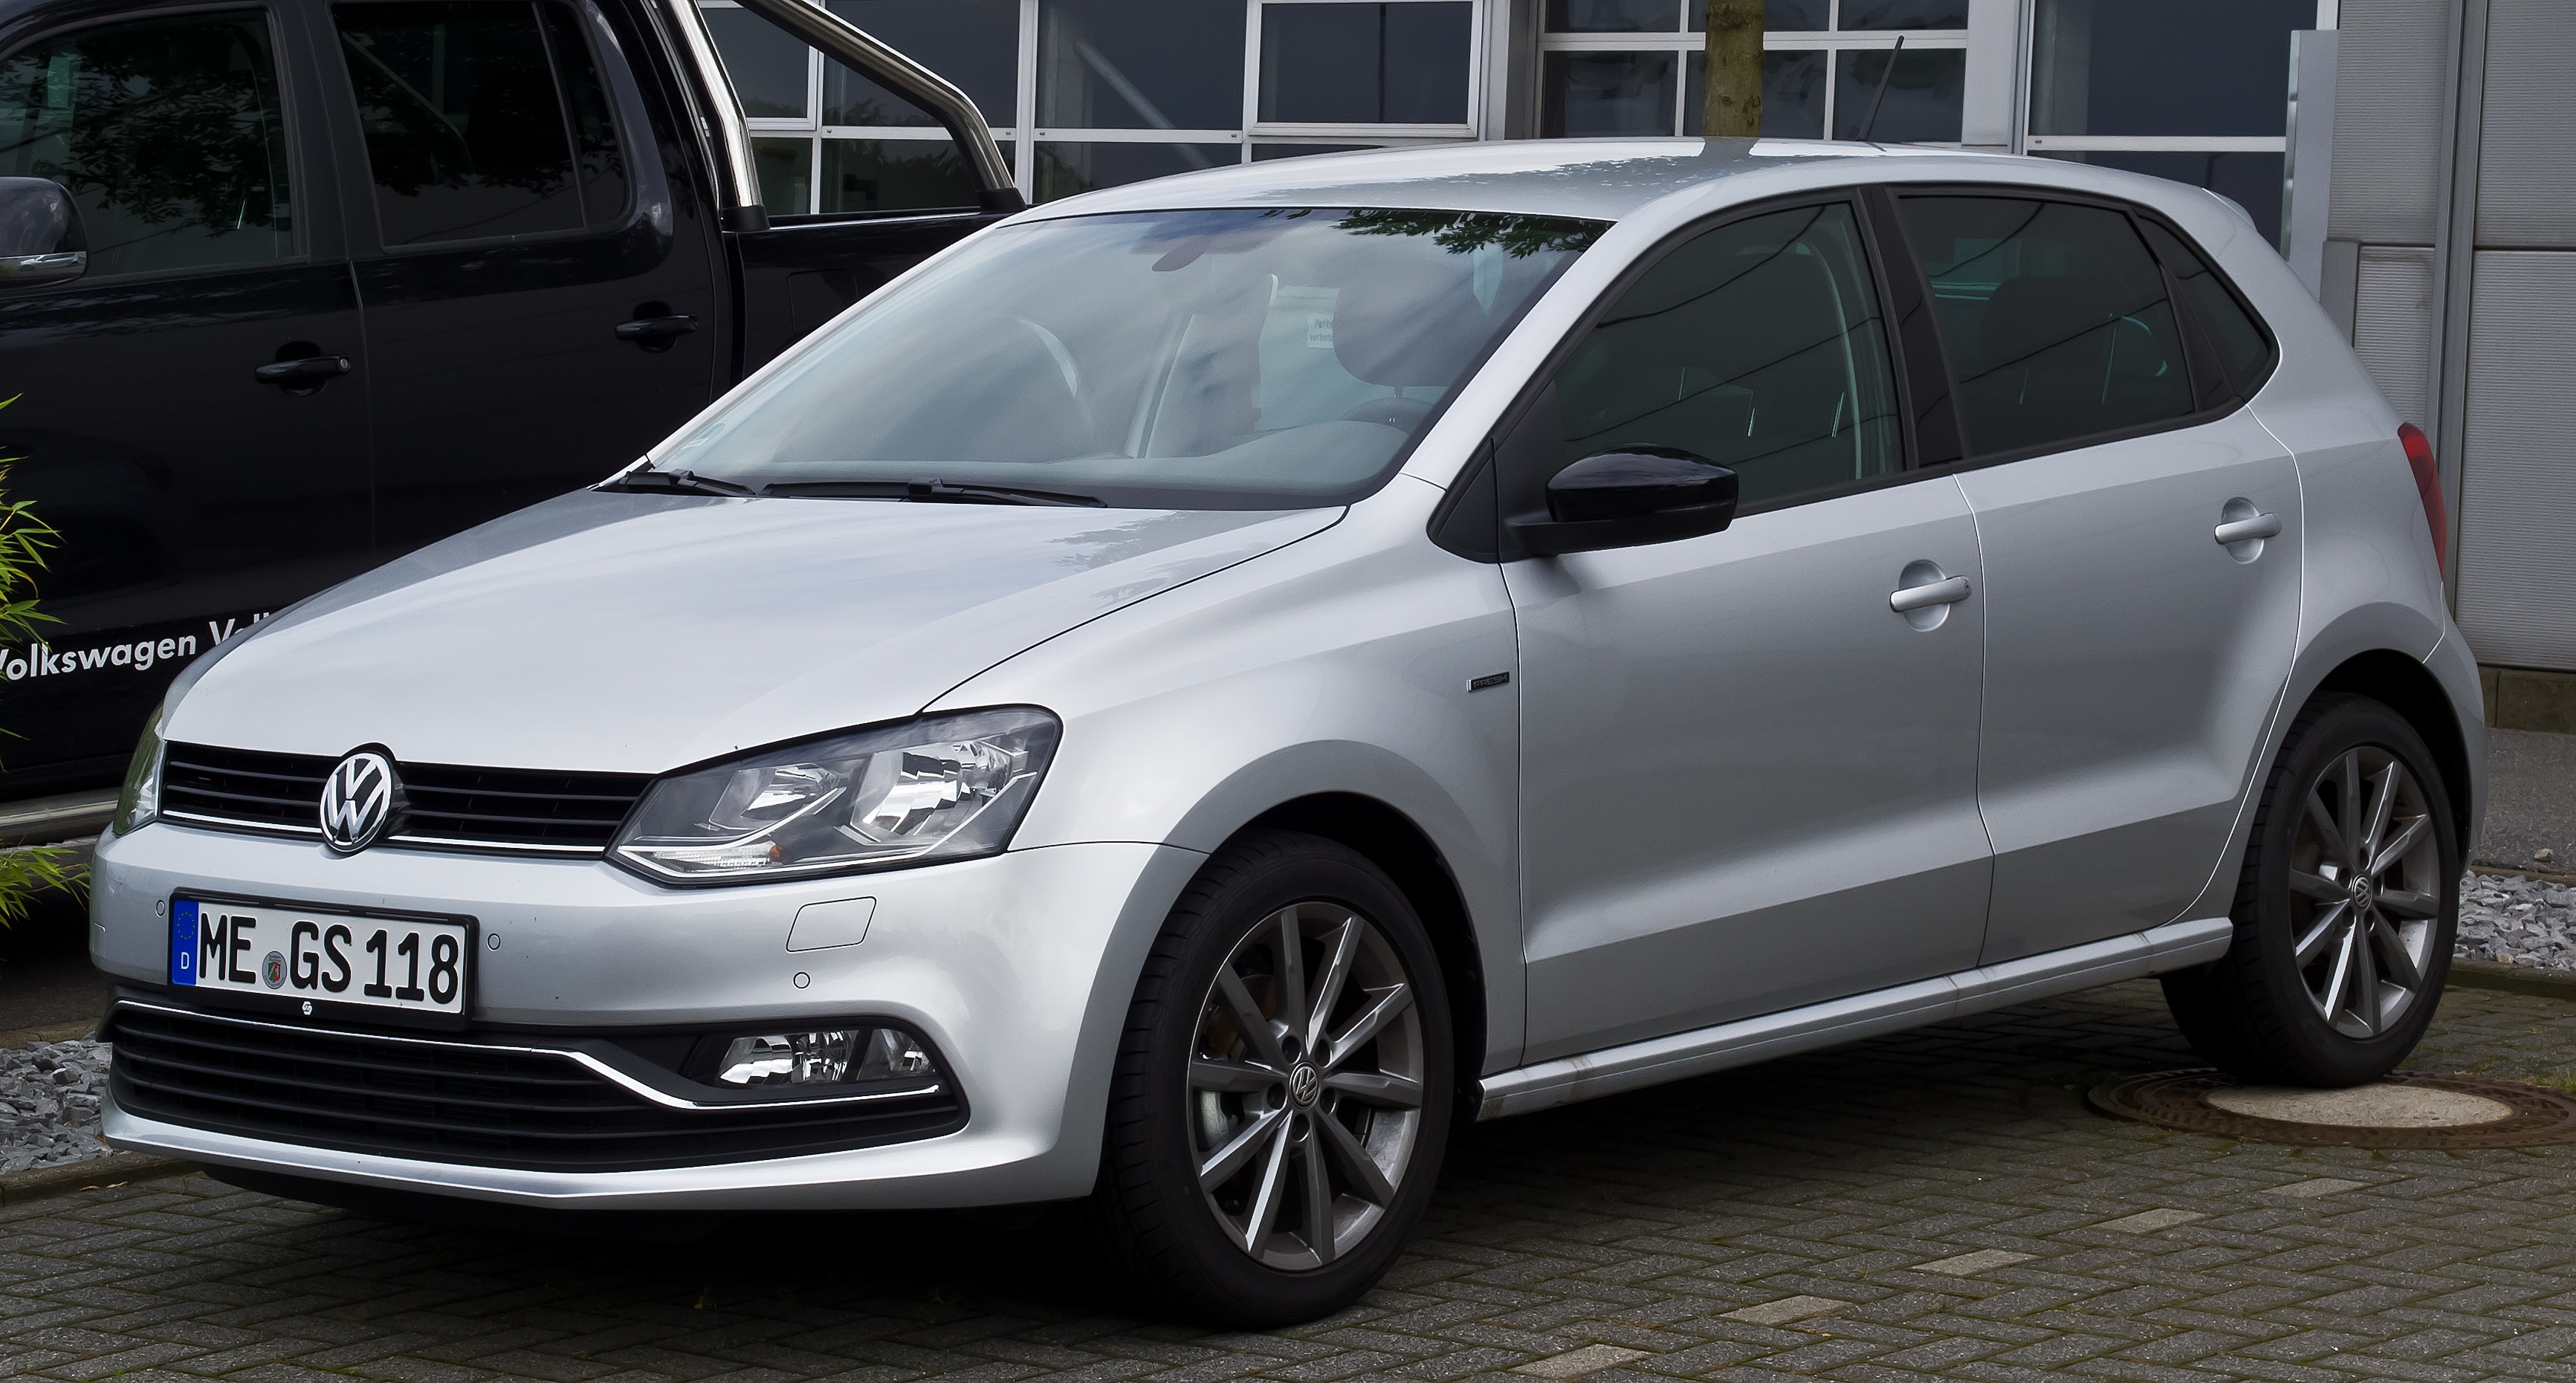 Volkswagen Polo Wallpapers Hq